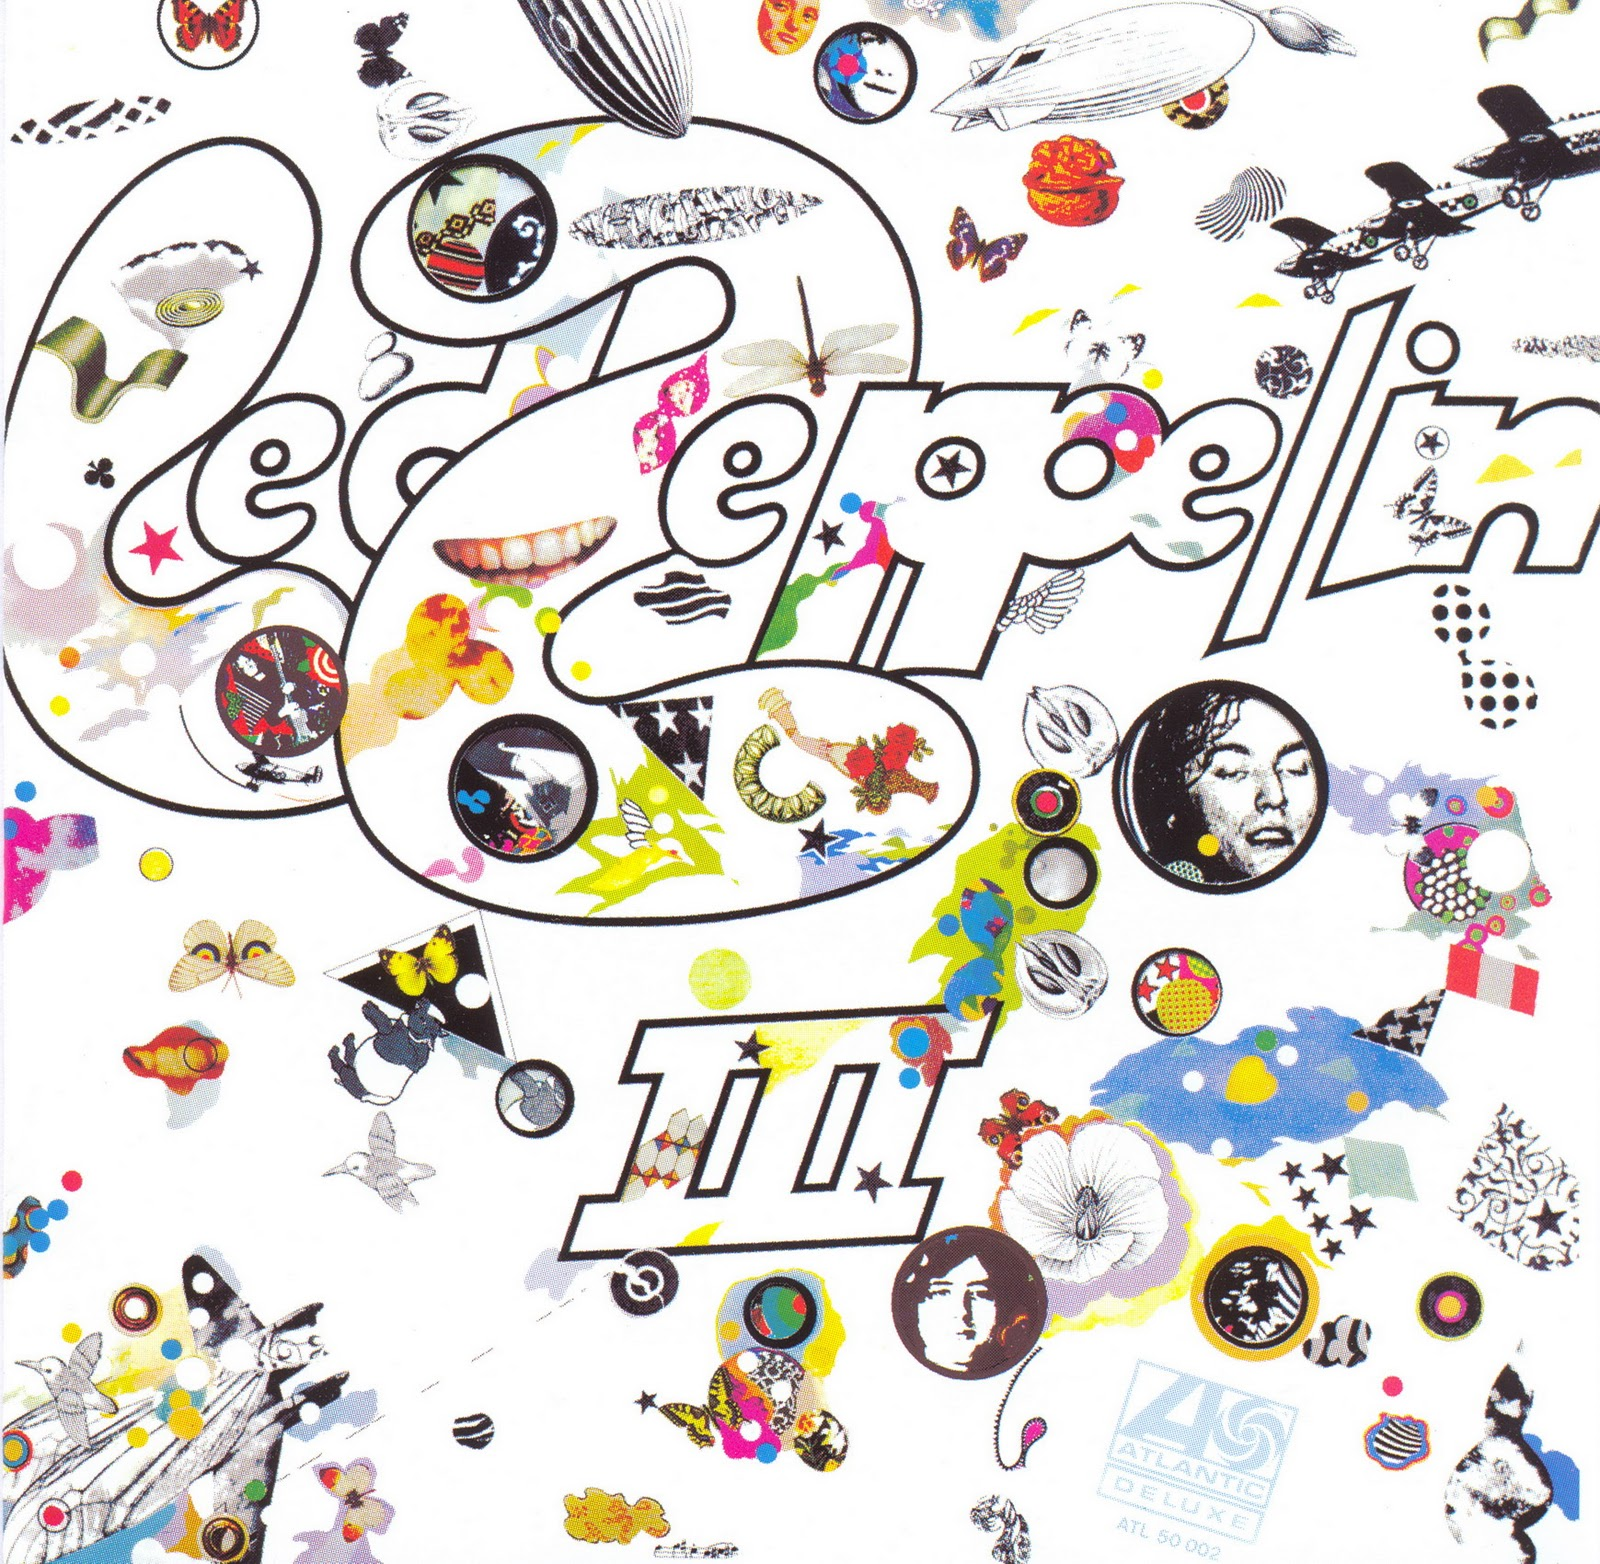 led-zeppelin-iii.jpg